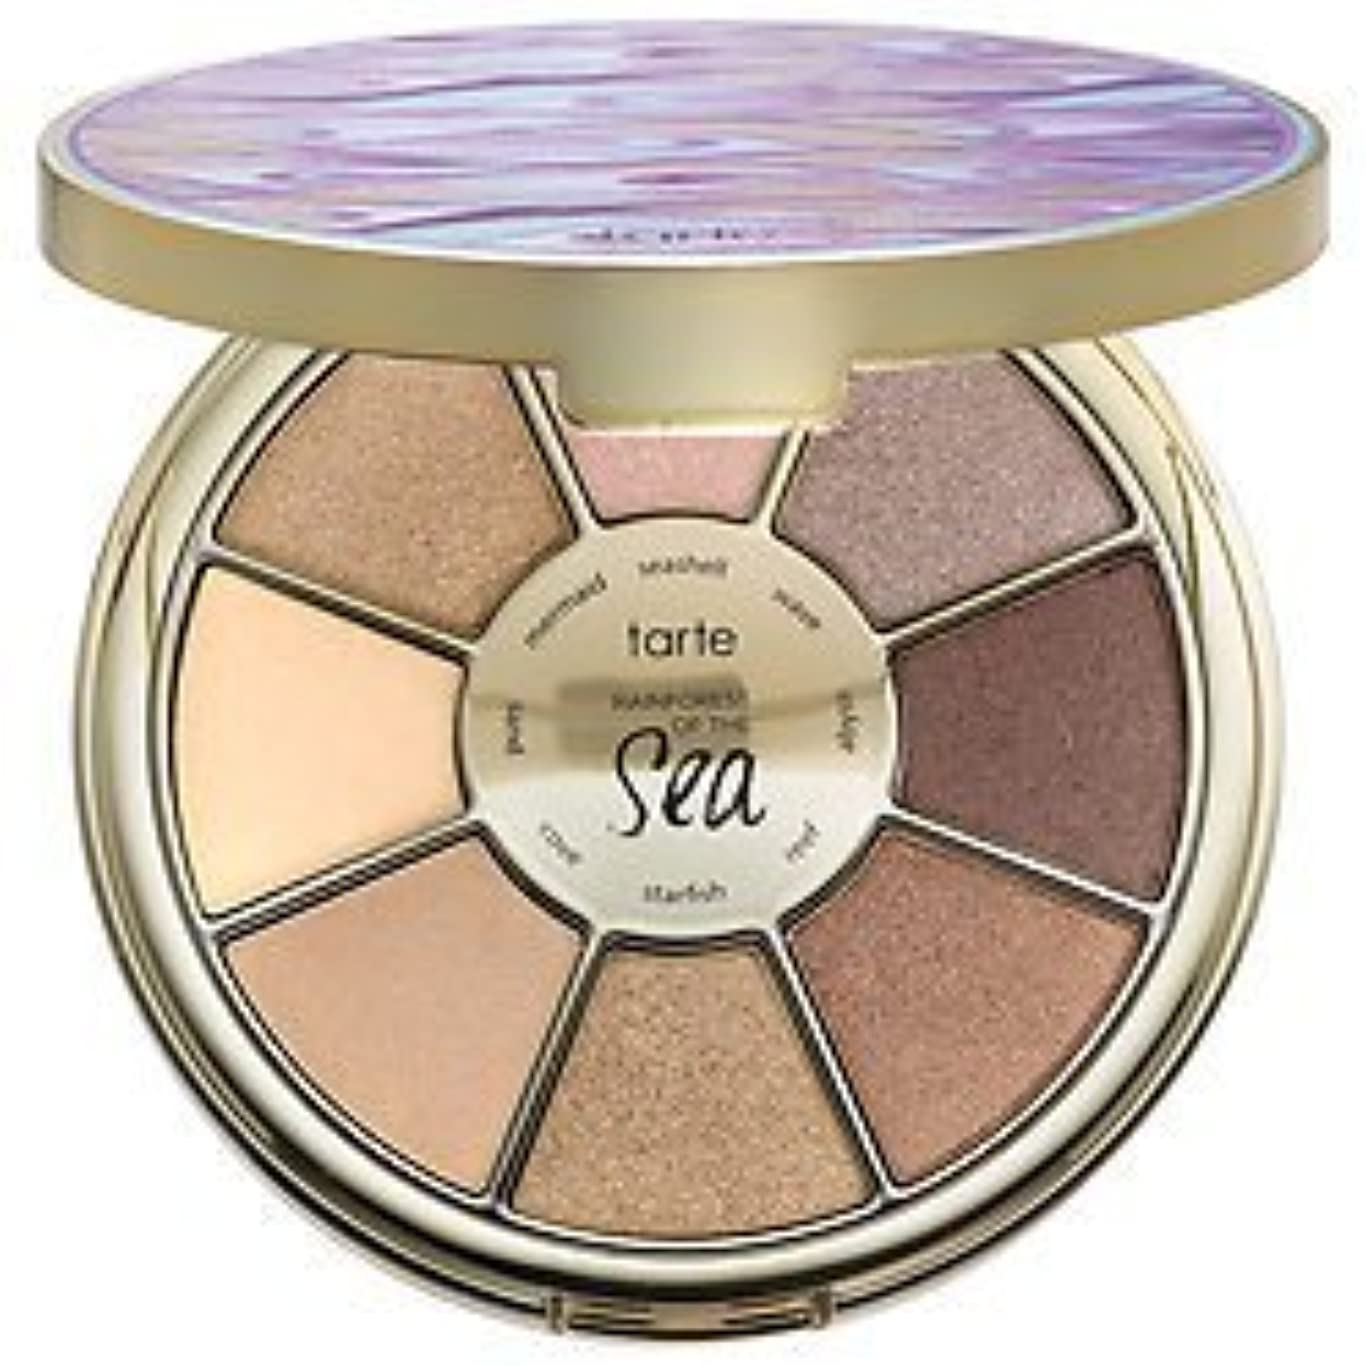 繕うつぶやき音楽を聴くTARTE RAINFOREST OF THE SEA EYESHADOW PALETTE by Tarte Cosmetics [並行輸入品]